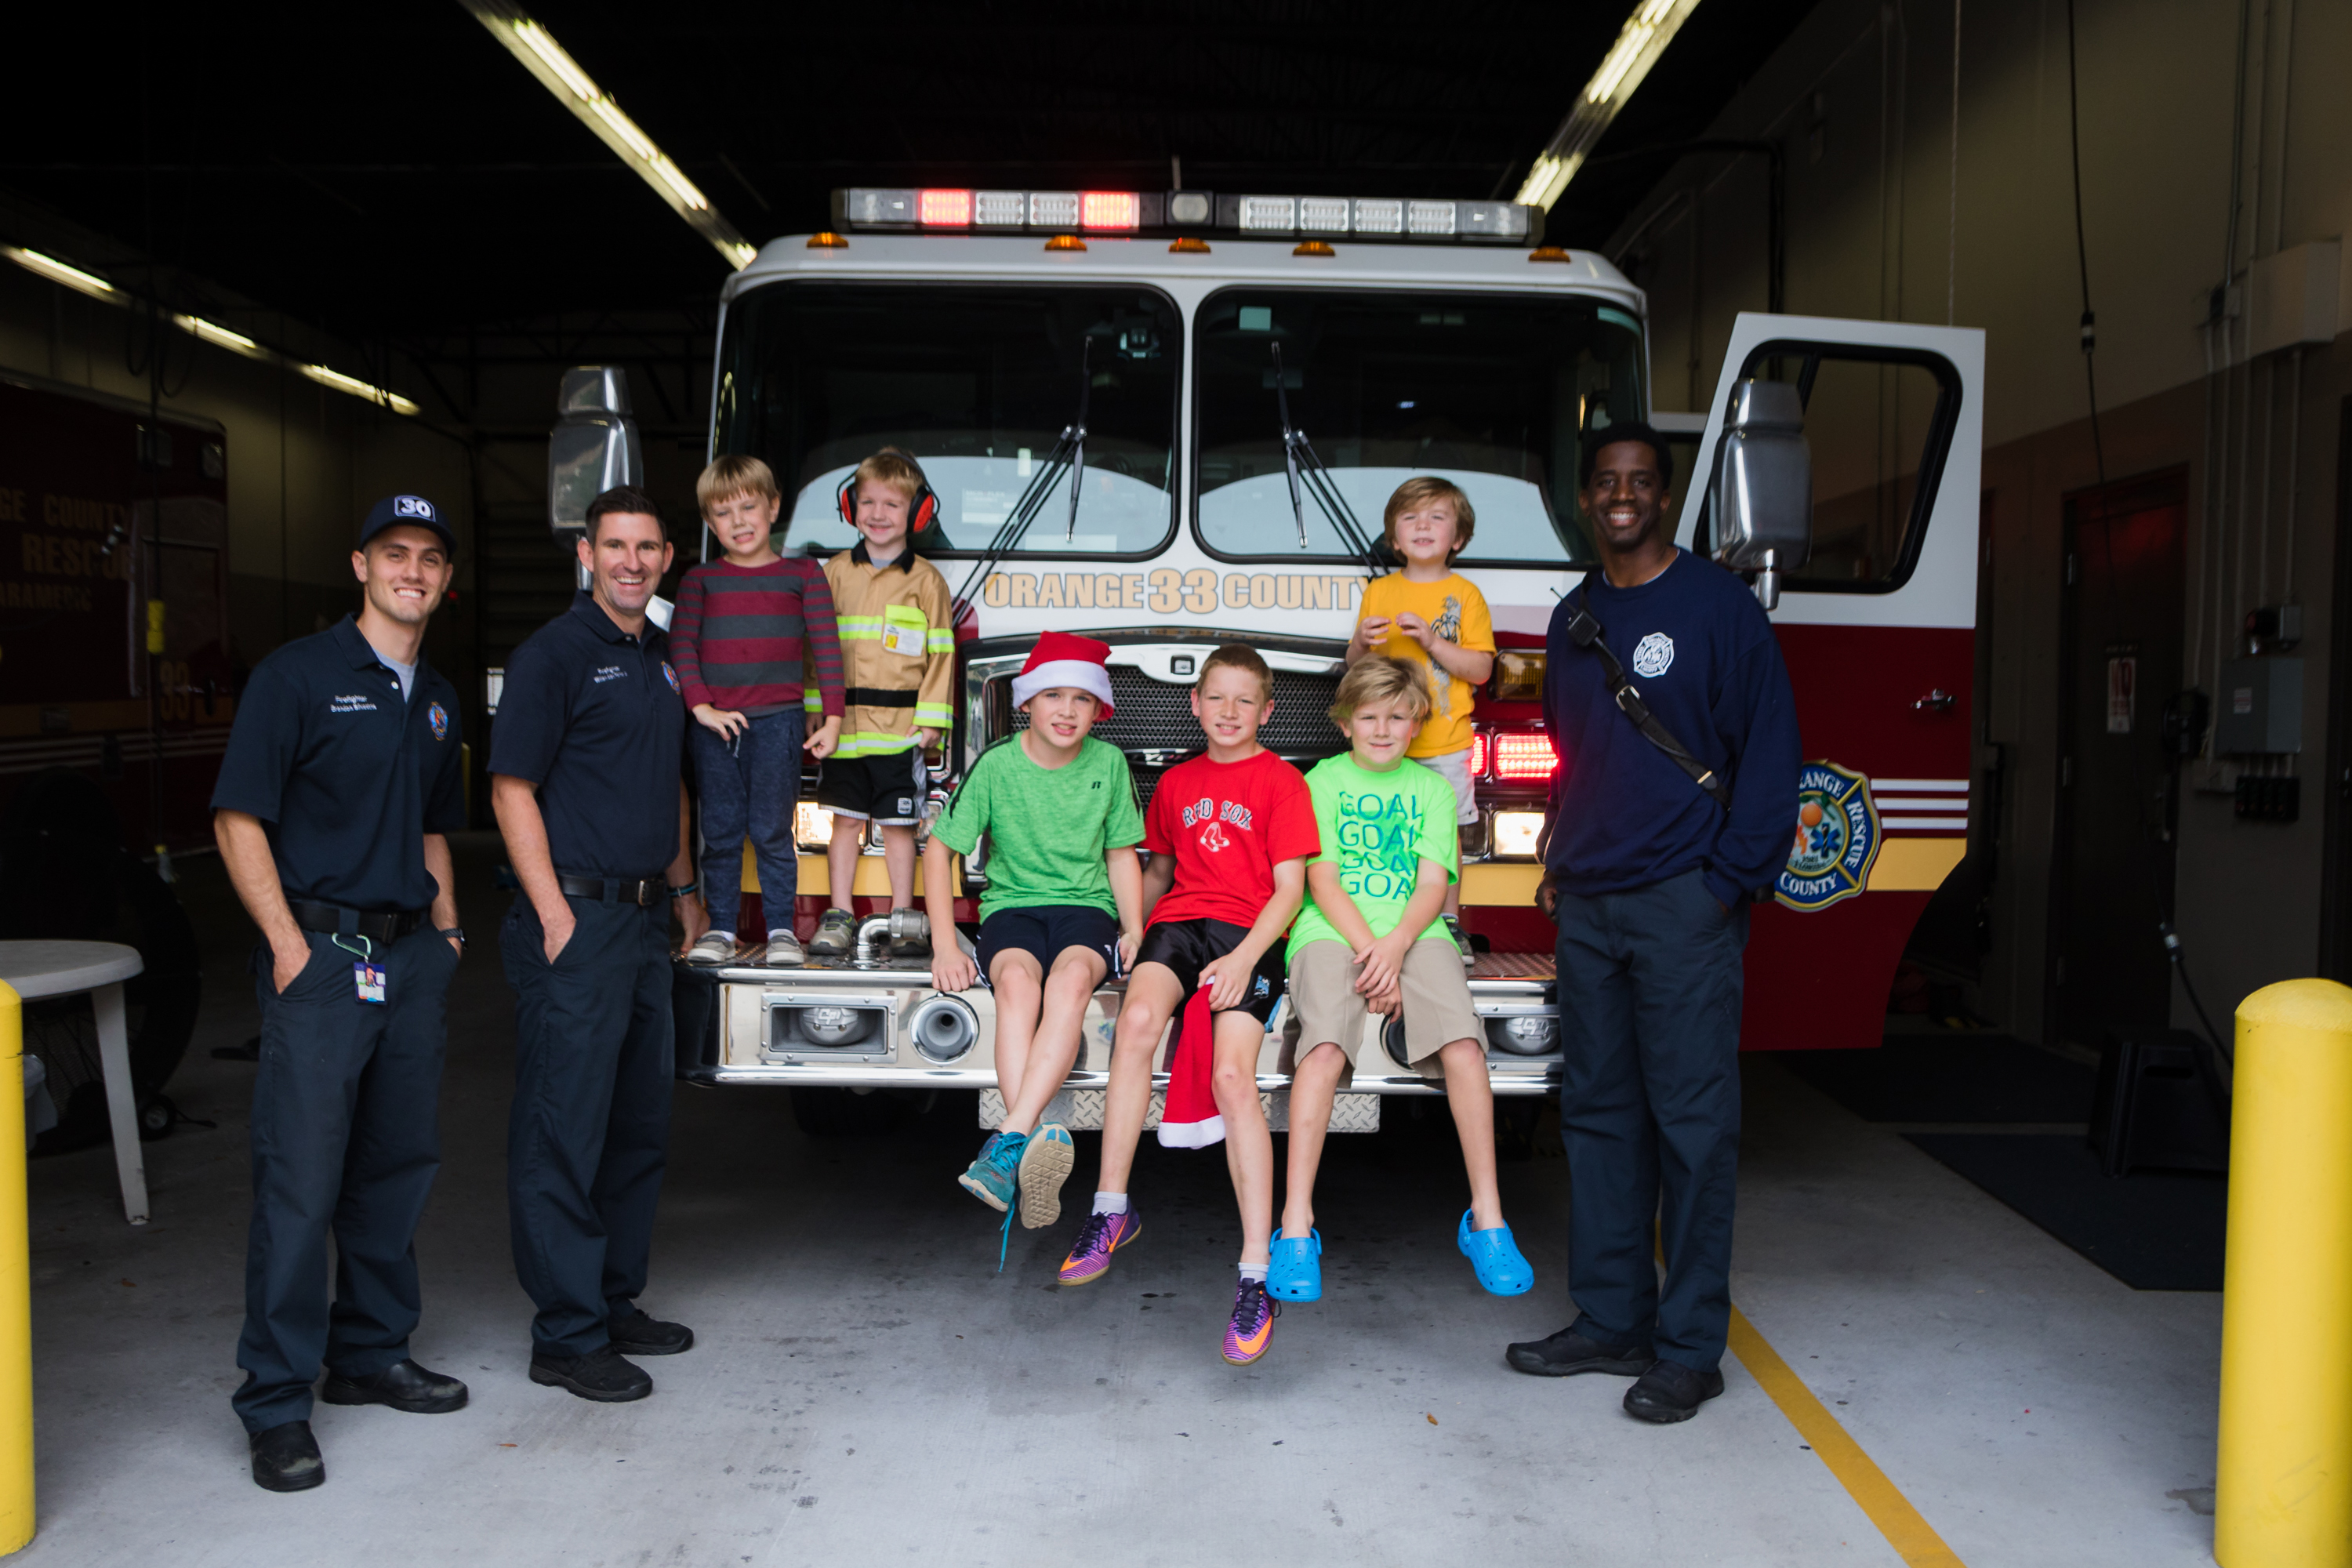 Children and firefighters standing in front of a fire truck